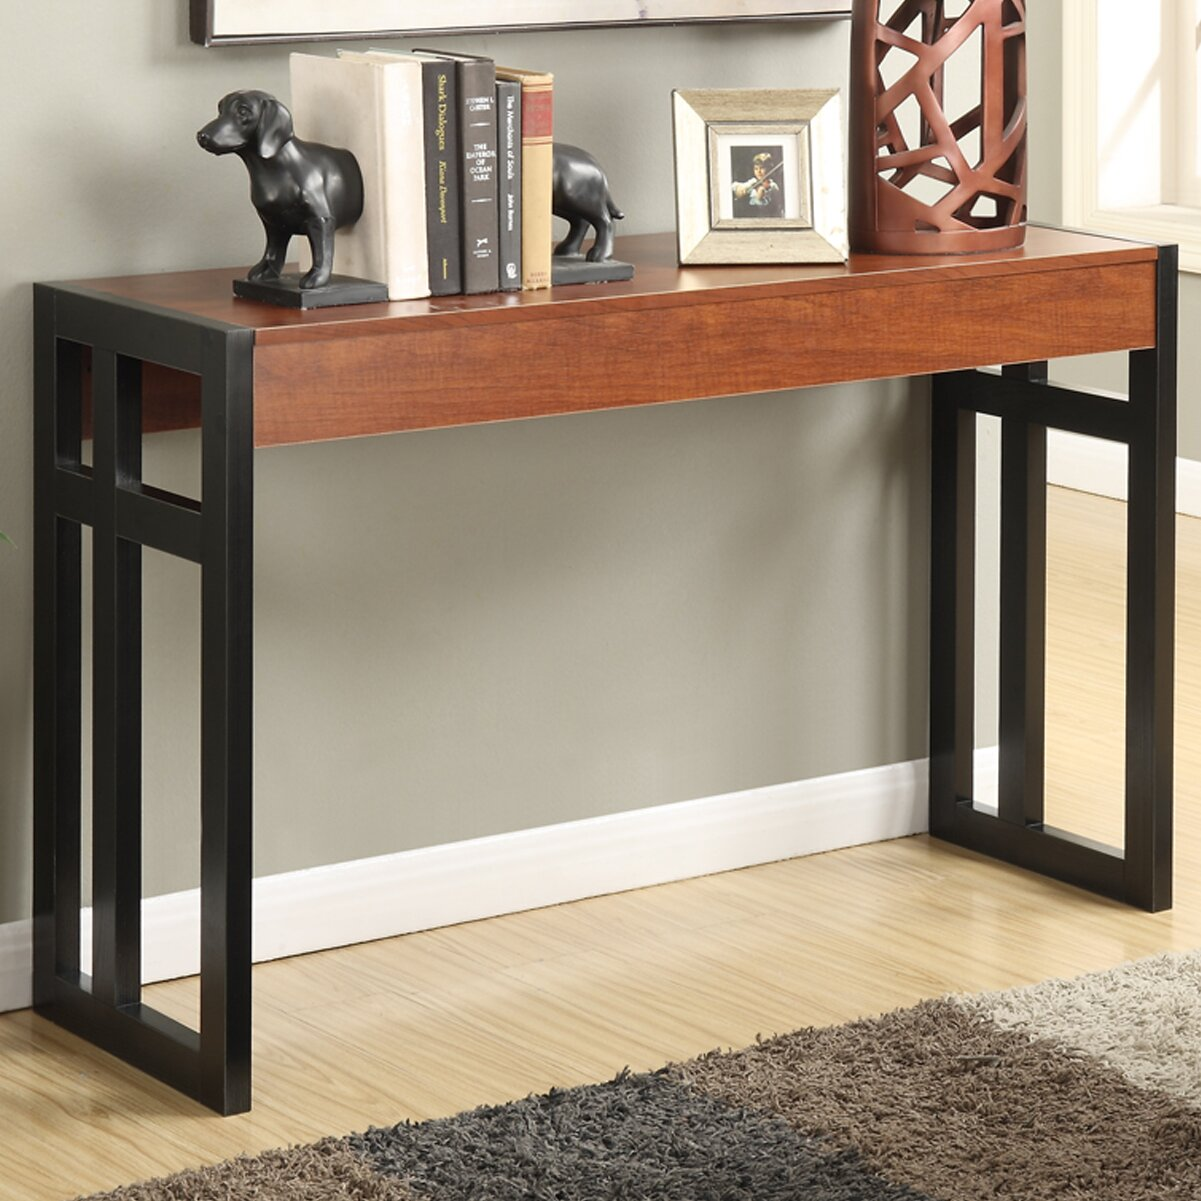 Convenience Concepts Monterey Console Table & Reviews. Tribeca Coffee Table. Desk Drawer Paper Organizer. Desk With Bookshelf Attached. Ikea Bunk Bed With Desk. Office Desk Drawer Organizer. Desk With Bookshelves. Ikea Motorized Desk. Glass L Shaped Desks